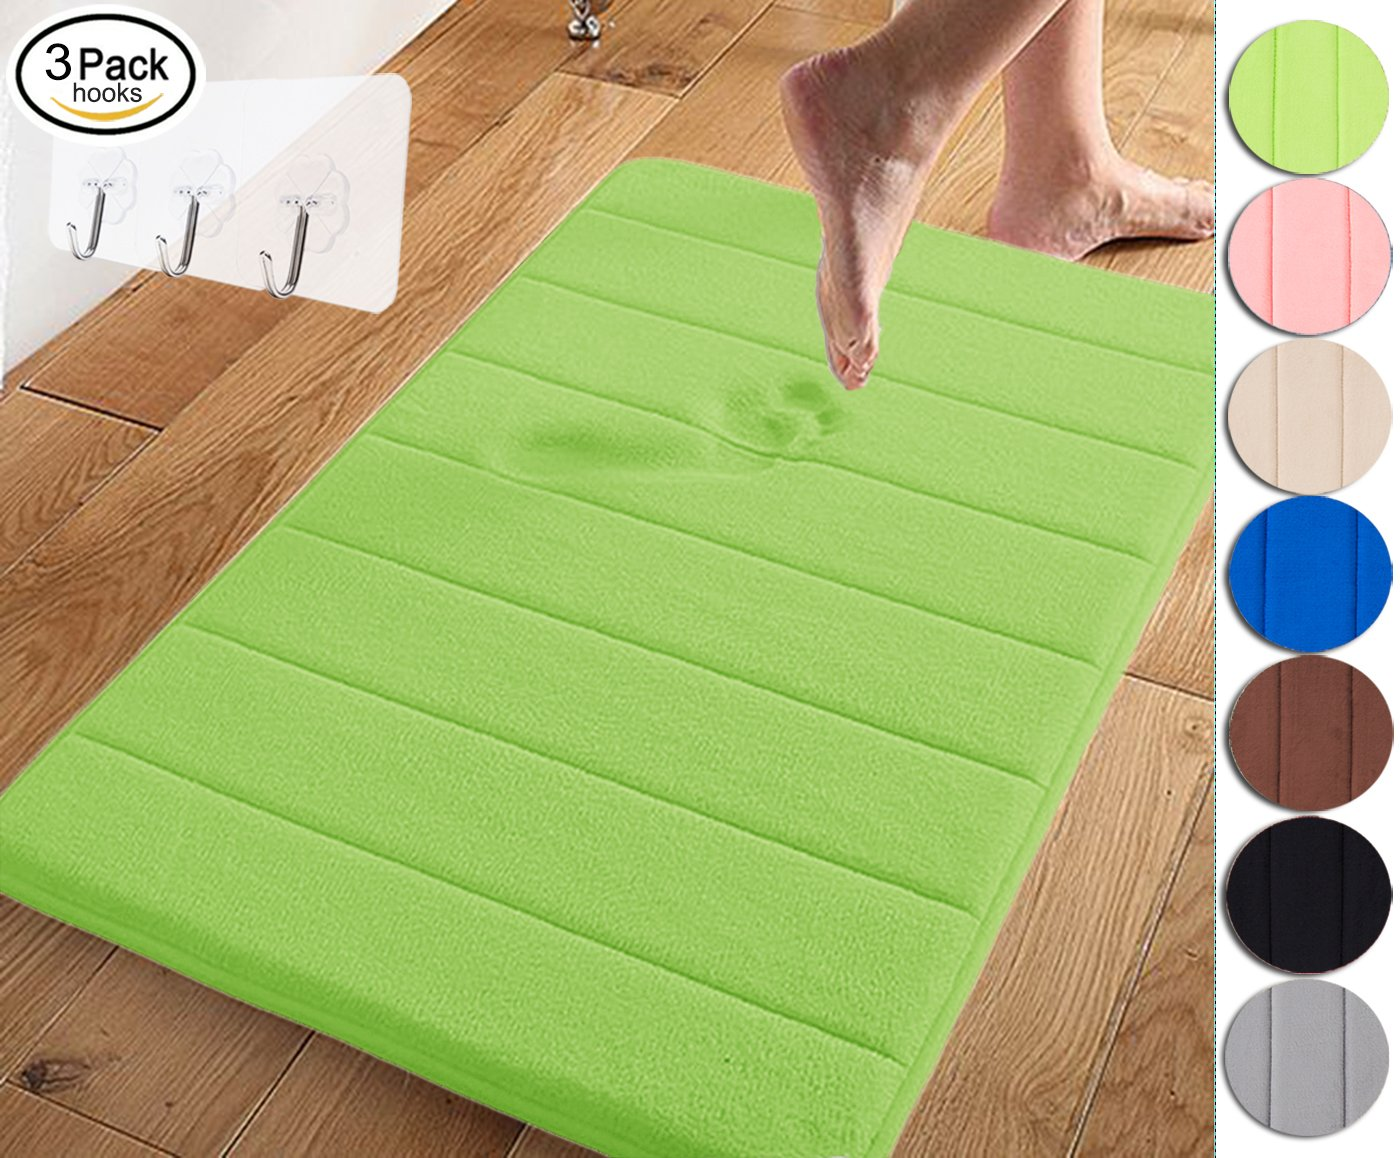 Yimobra Memory Foam Bath Mat Large Size 31.5 by 19.8 Inch,Maximum Absorbent,Soft,Comfortable,Non-Slip,Easier to Dry for Bathroom,Green (Presented Wall Hooks 3 Pack) by Yimobra